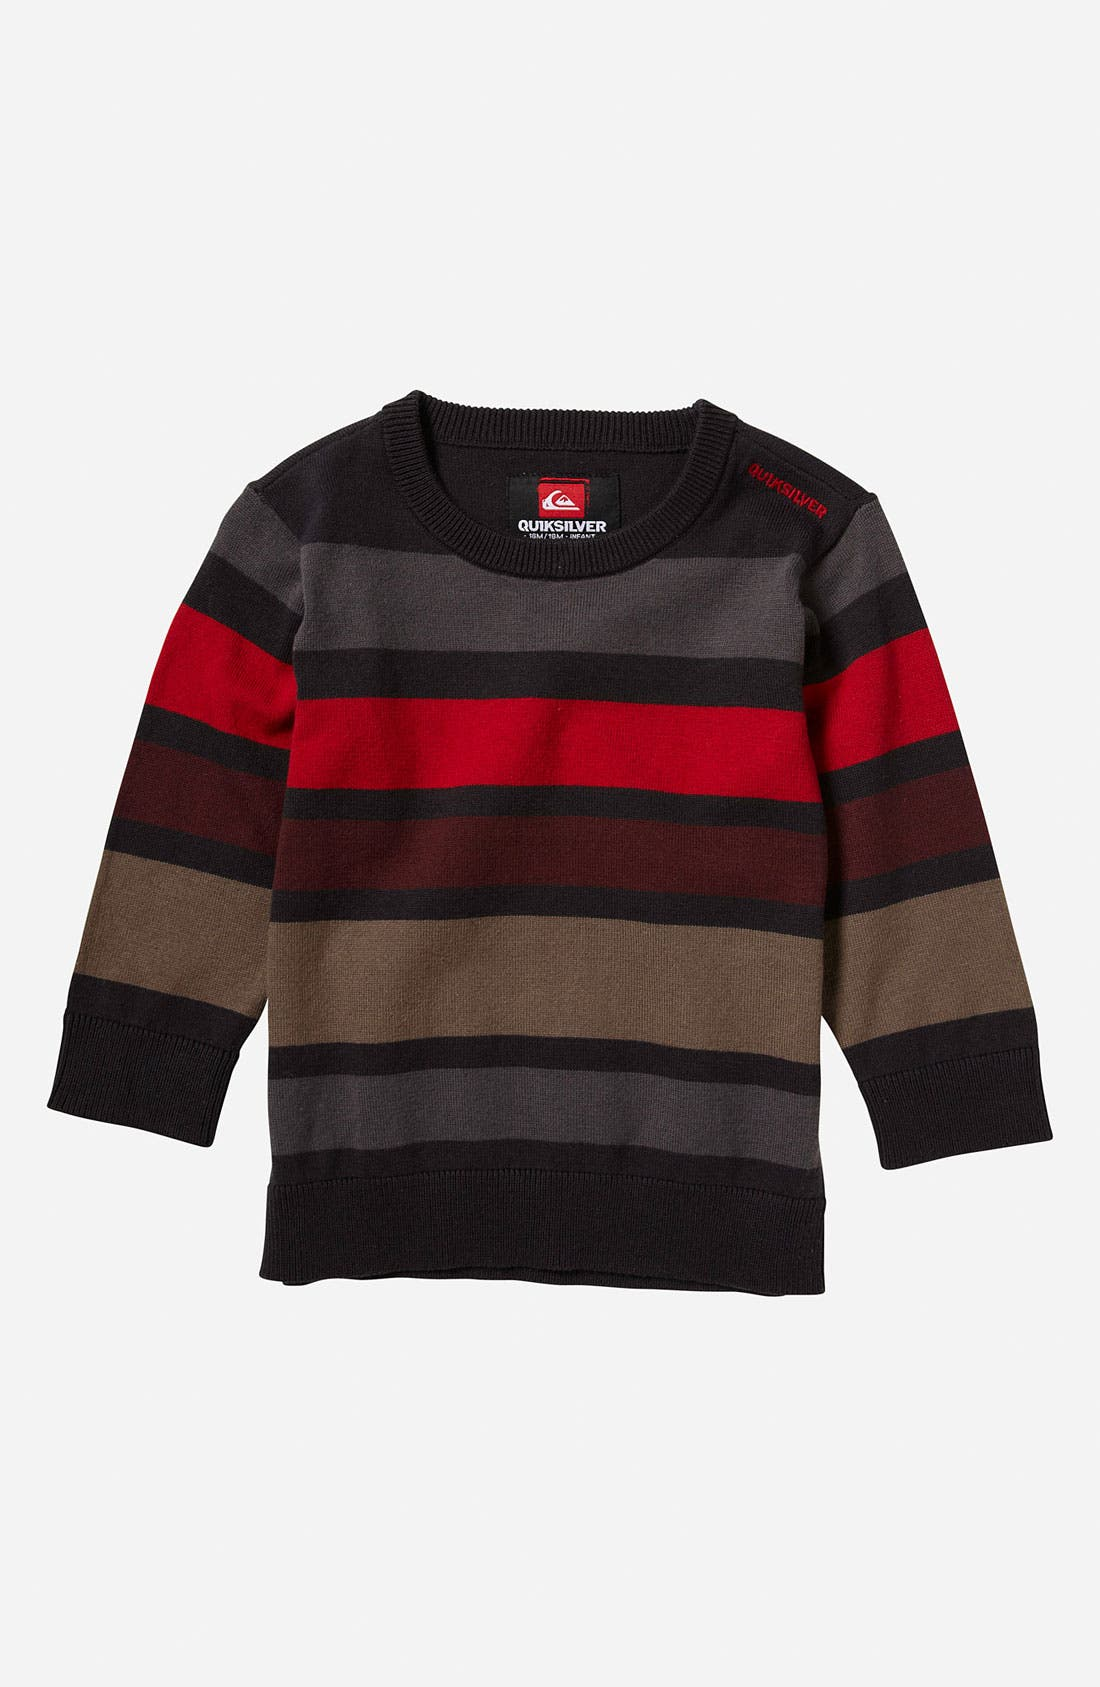 Main Image - Quiksilver 'Casting' Stripe Sweater (Toddler)